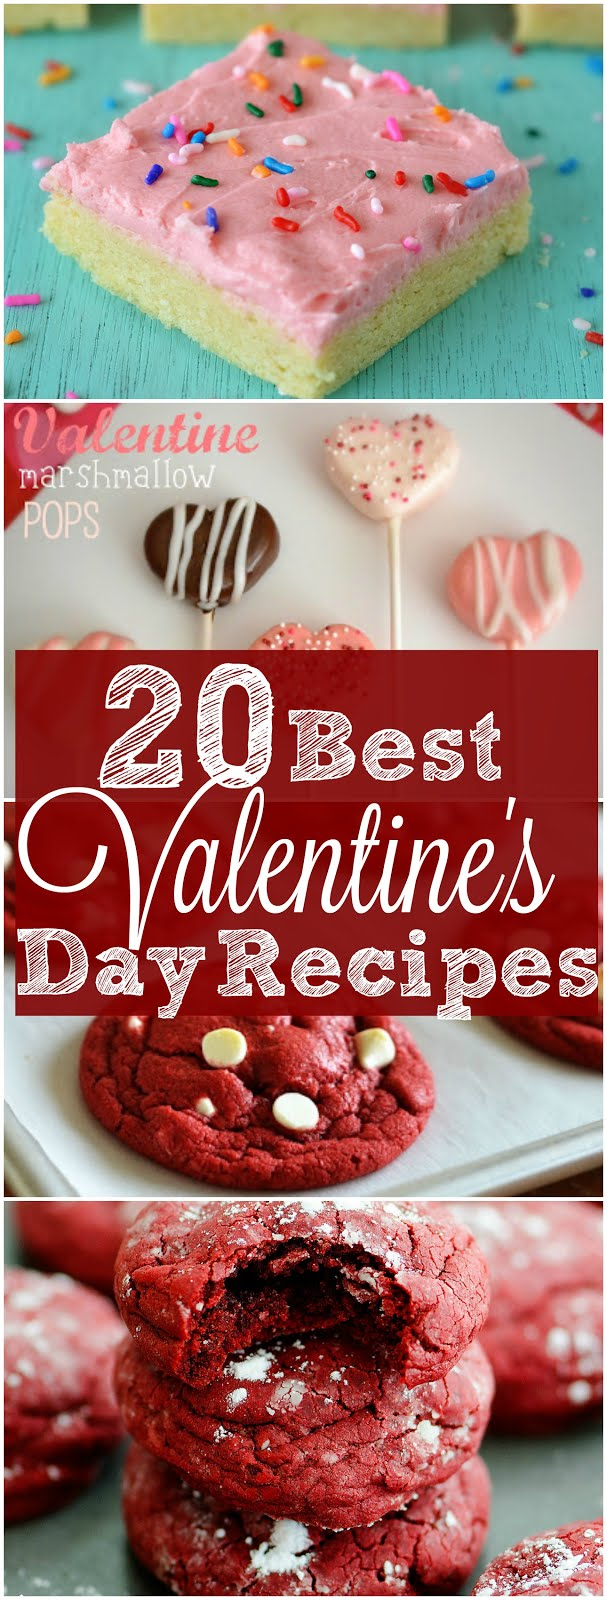 BEST Valentine's Day Desserts!